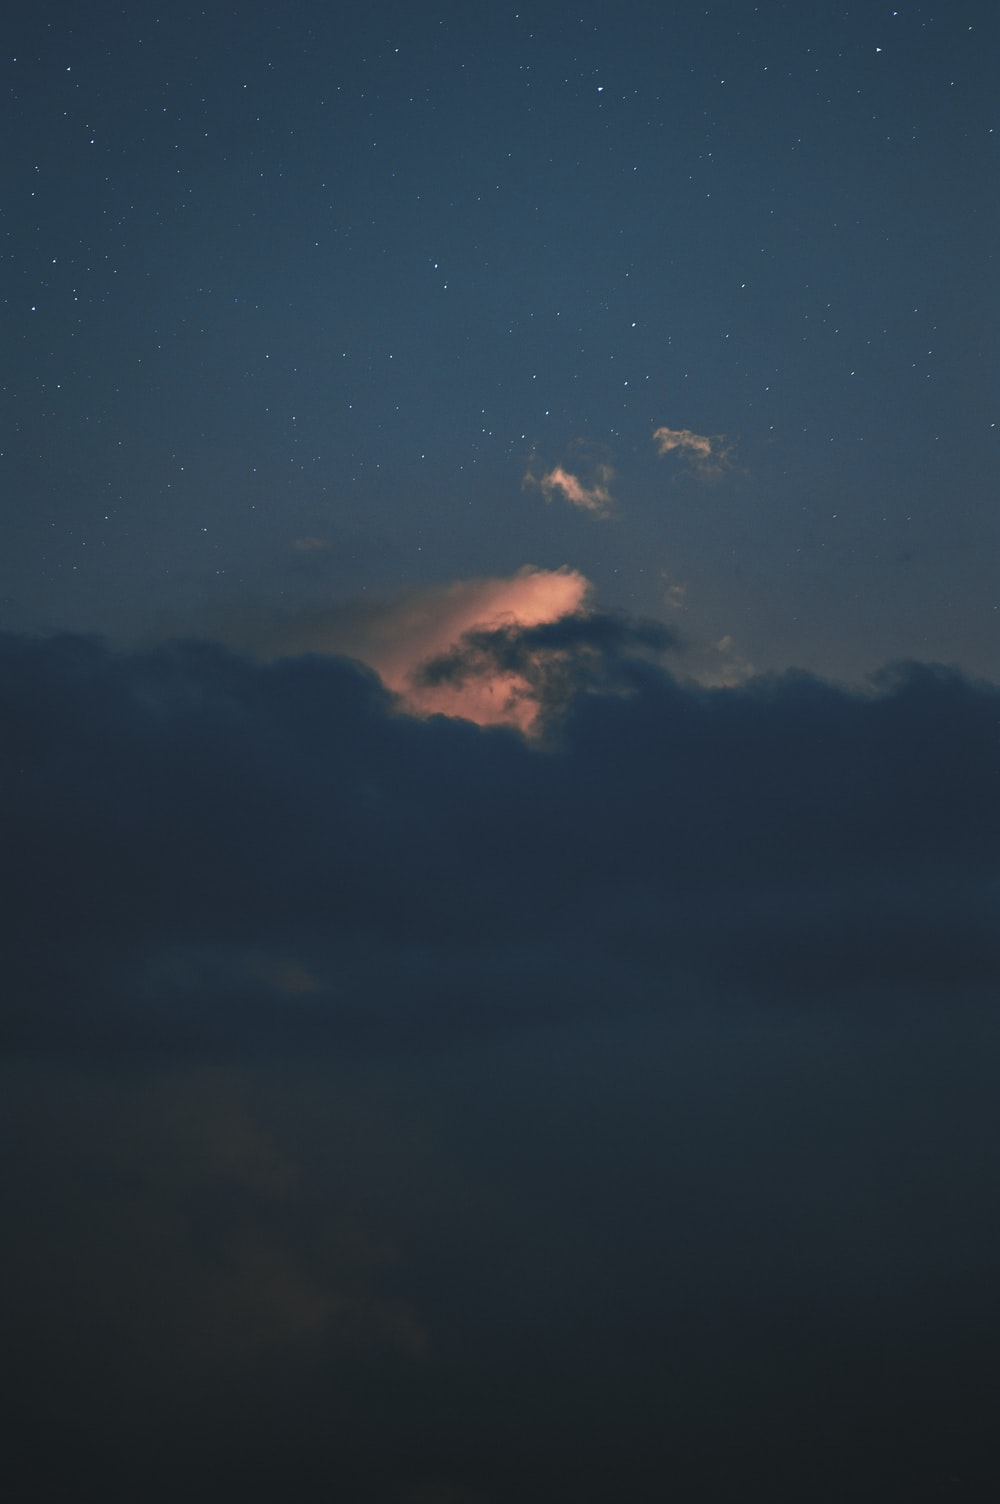 clouds during night